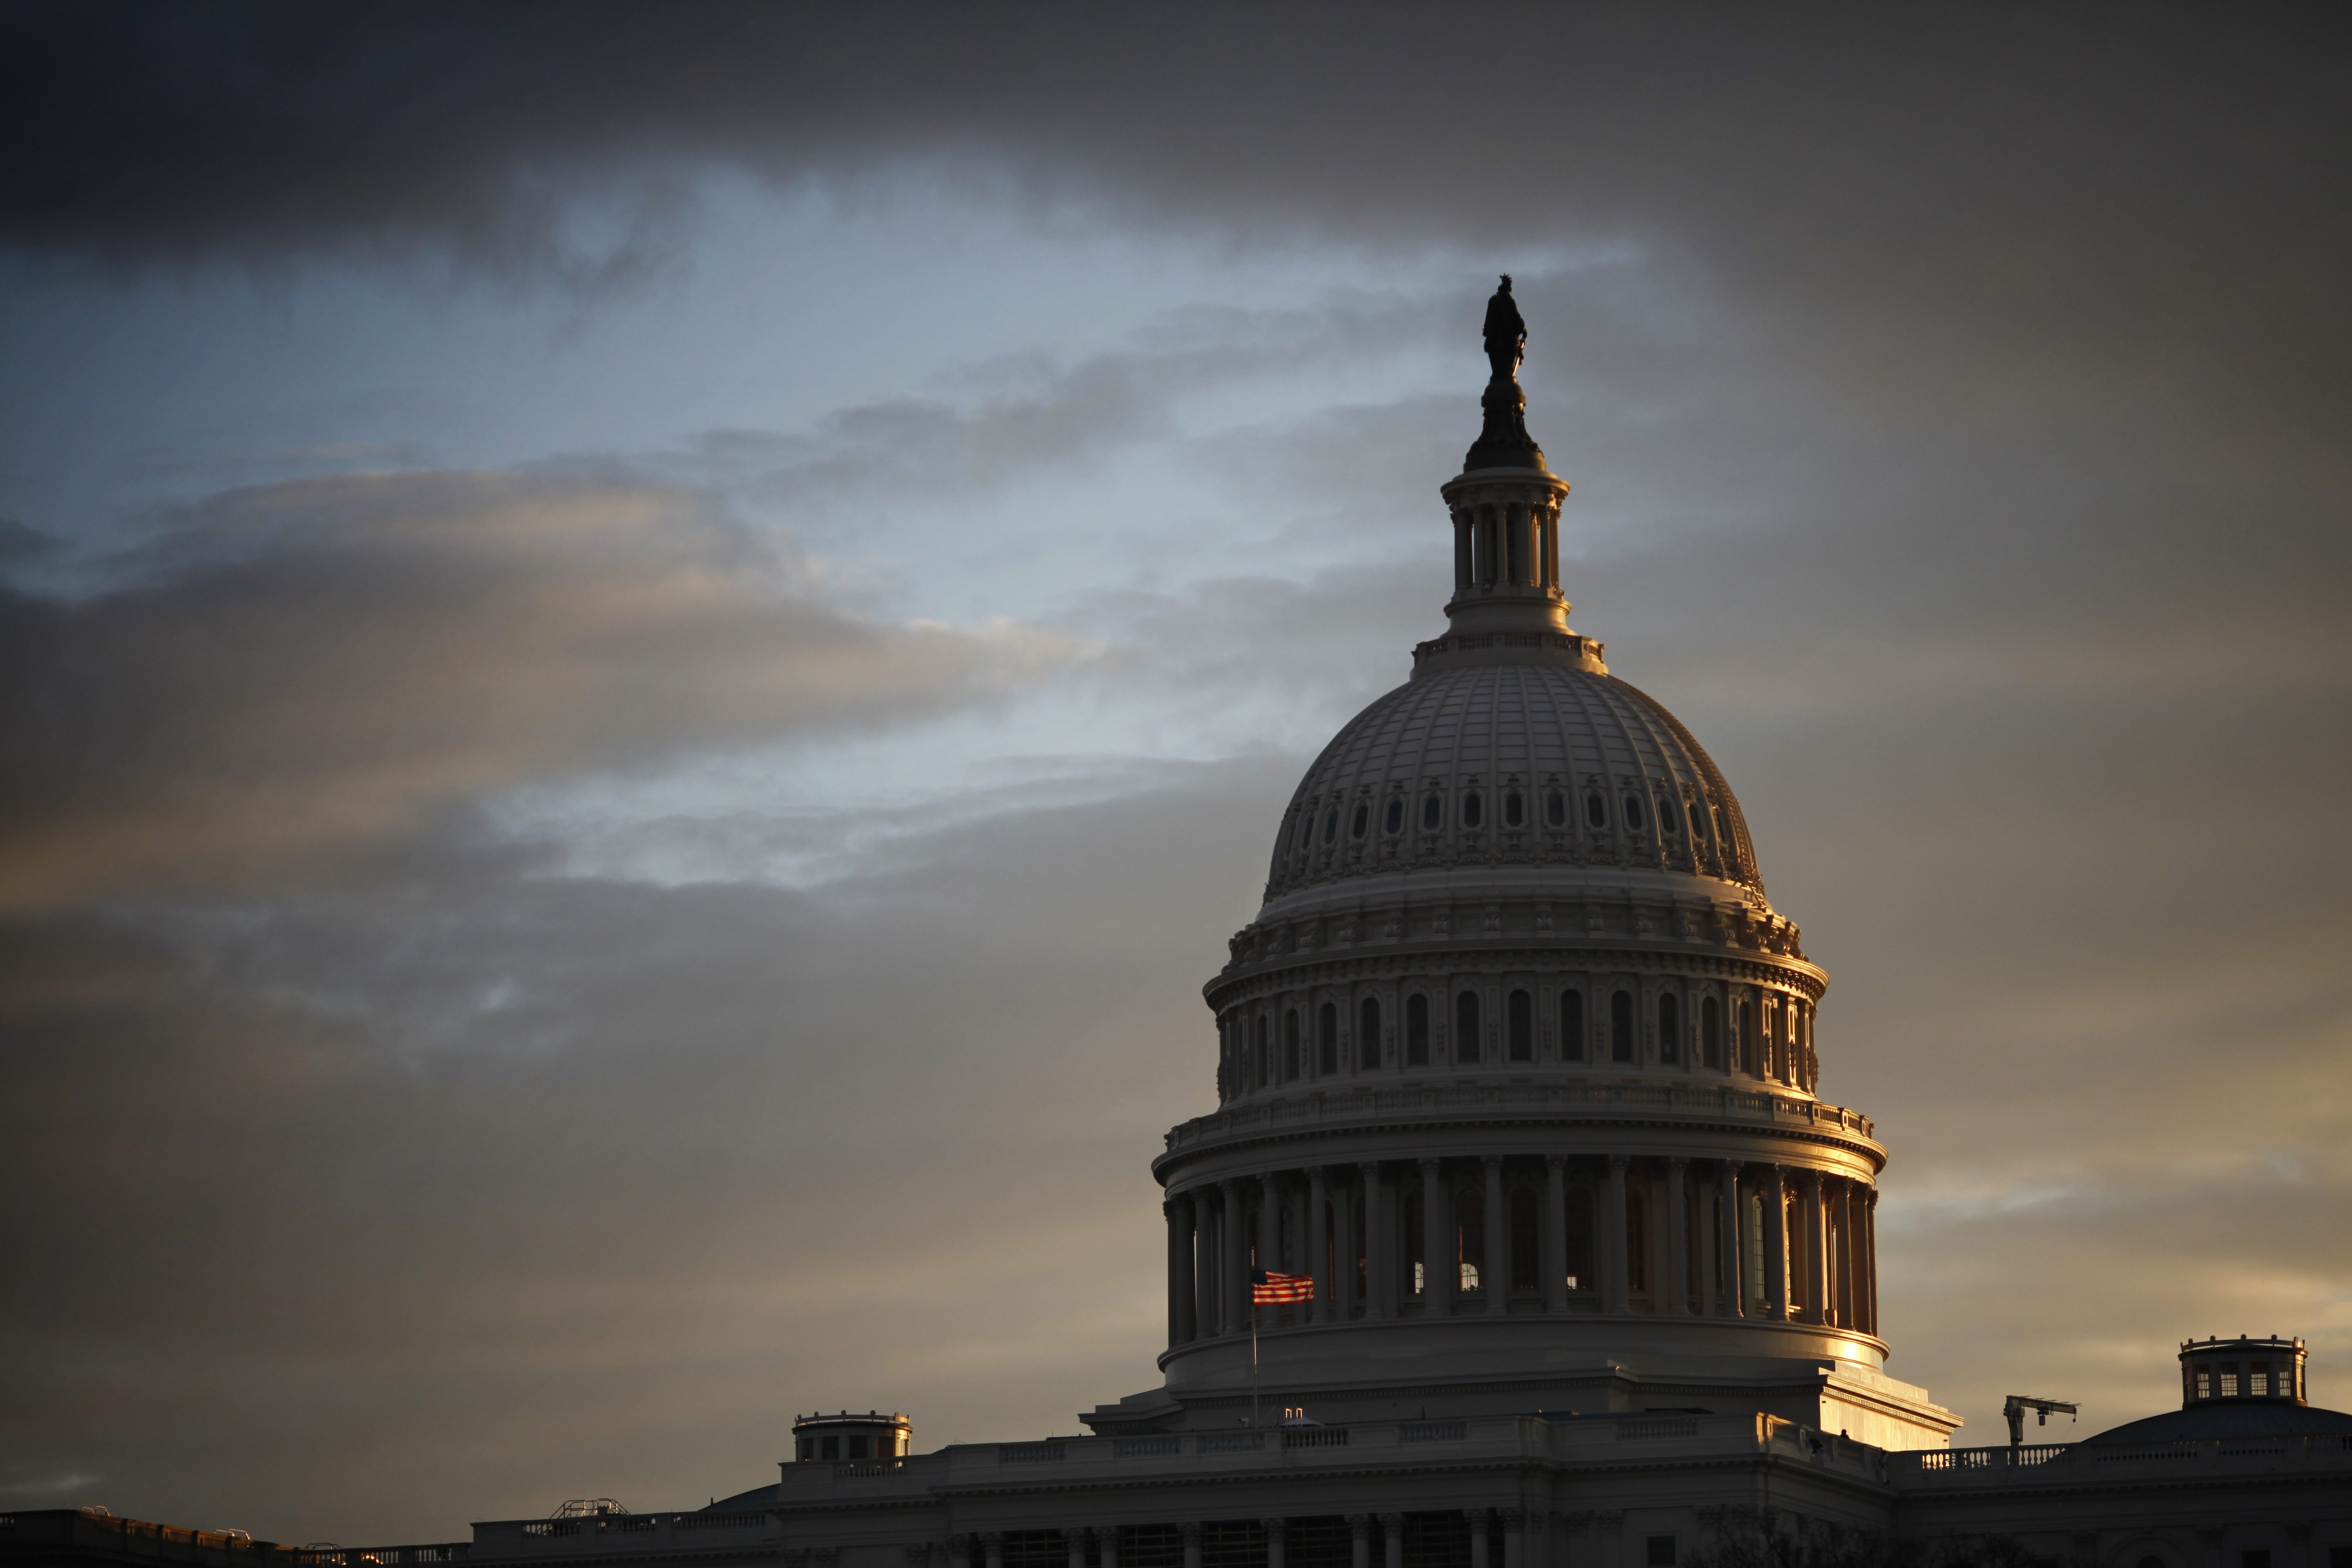 Congress, and the president, must find the political courage to apply budget cuts thoughtfully.